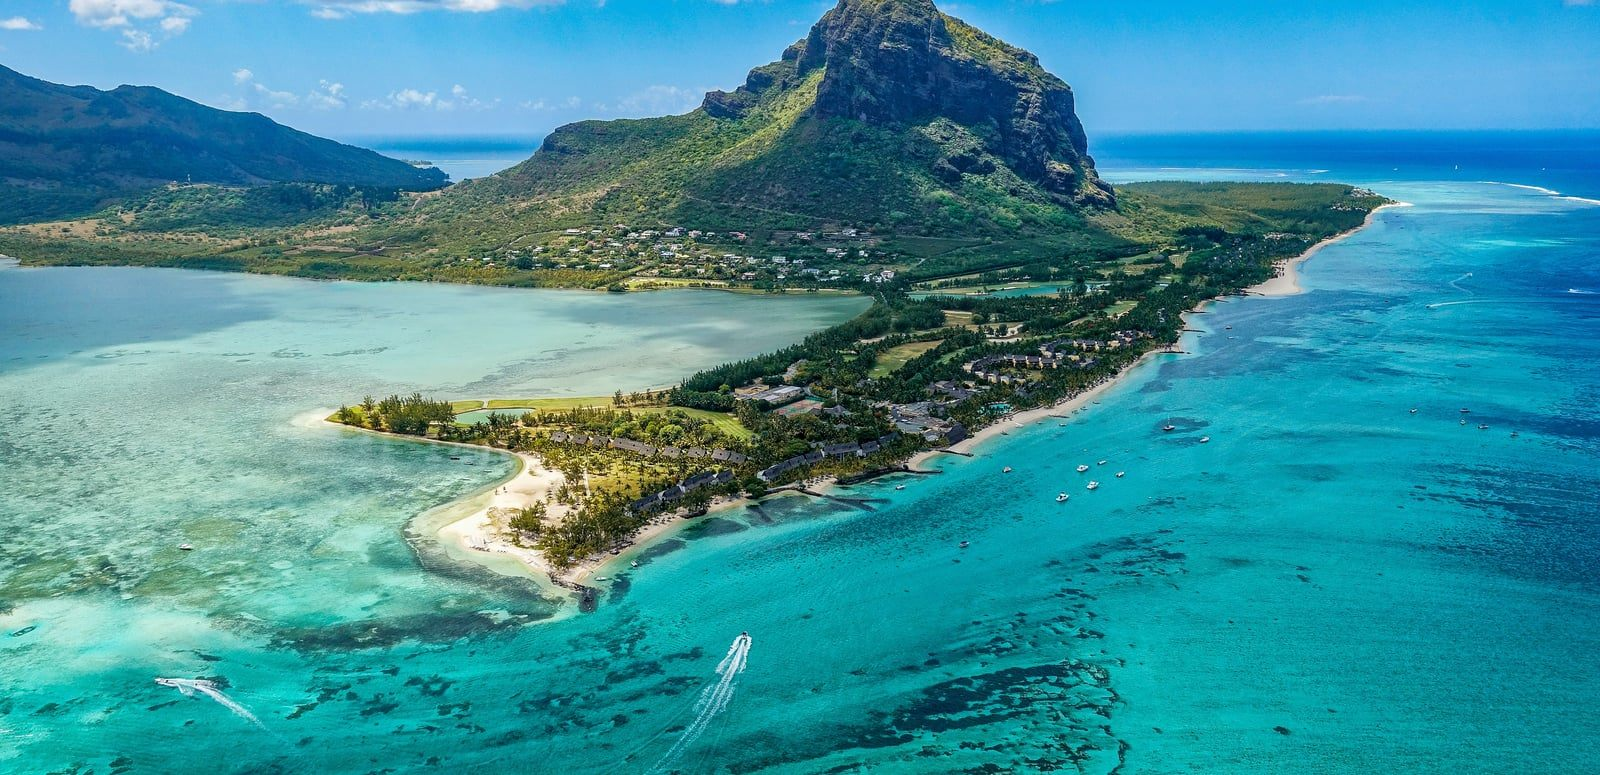 Lit 2 Places Noir Magnifique 101 Best Places to Visit In Mauritius